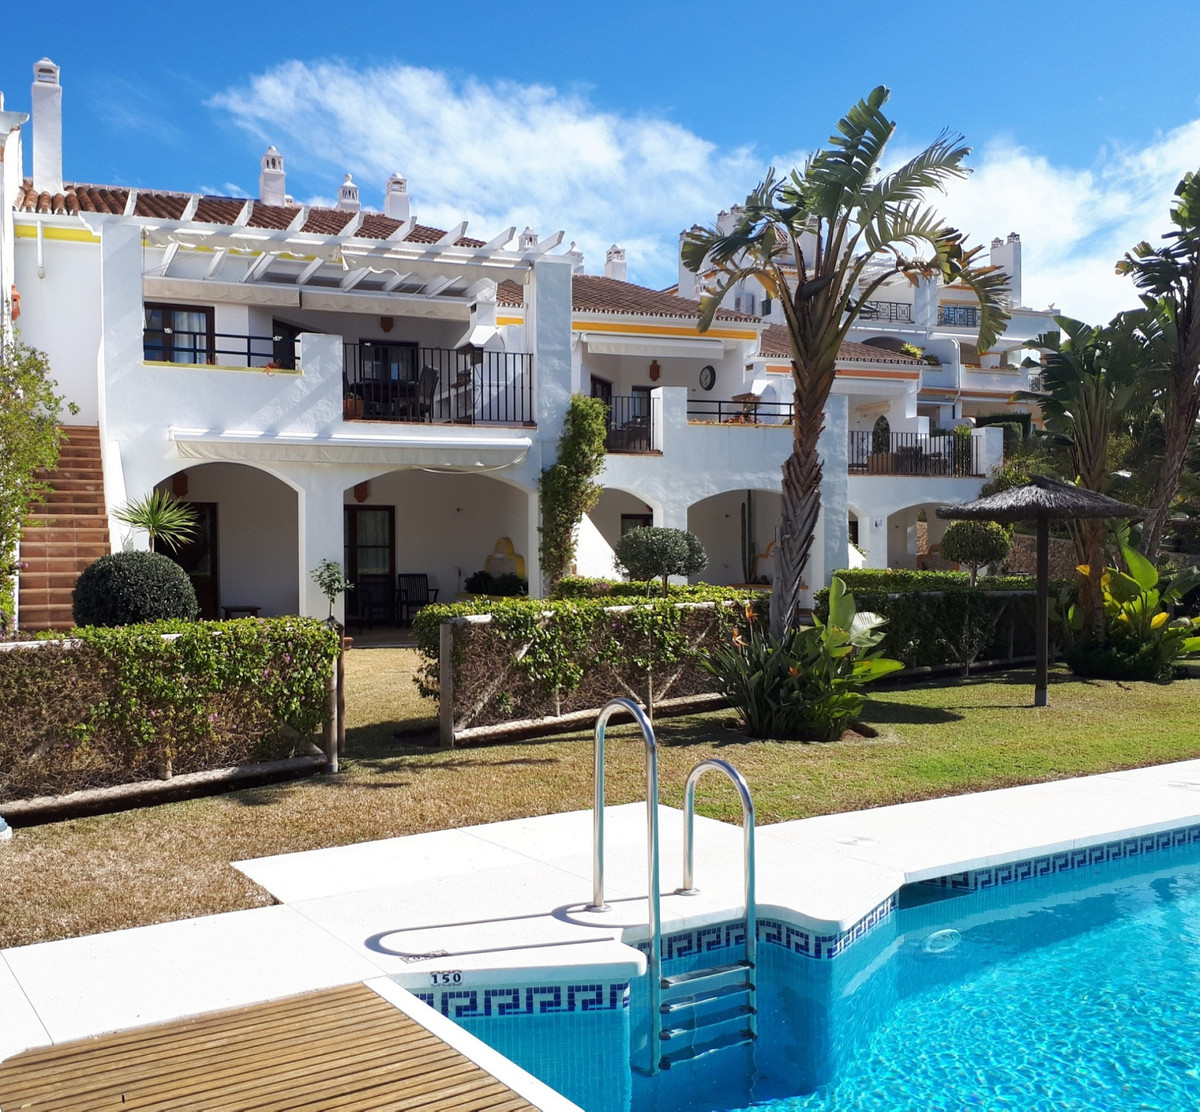 FRONTLINE MIRAFLORES GOLF COURSE This spacious and bright townhouse is located in the heart of the q,Spain